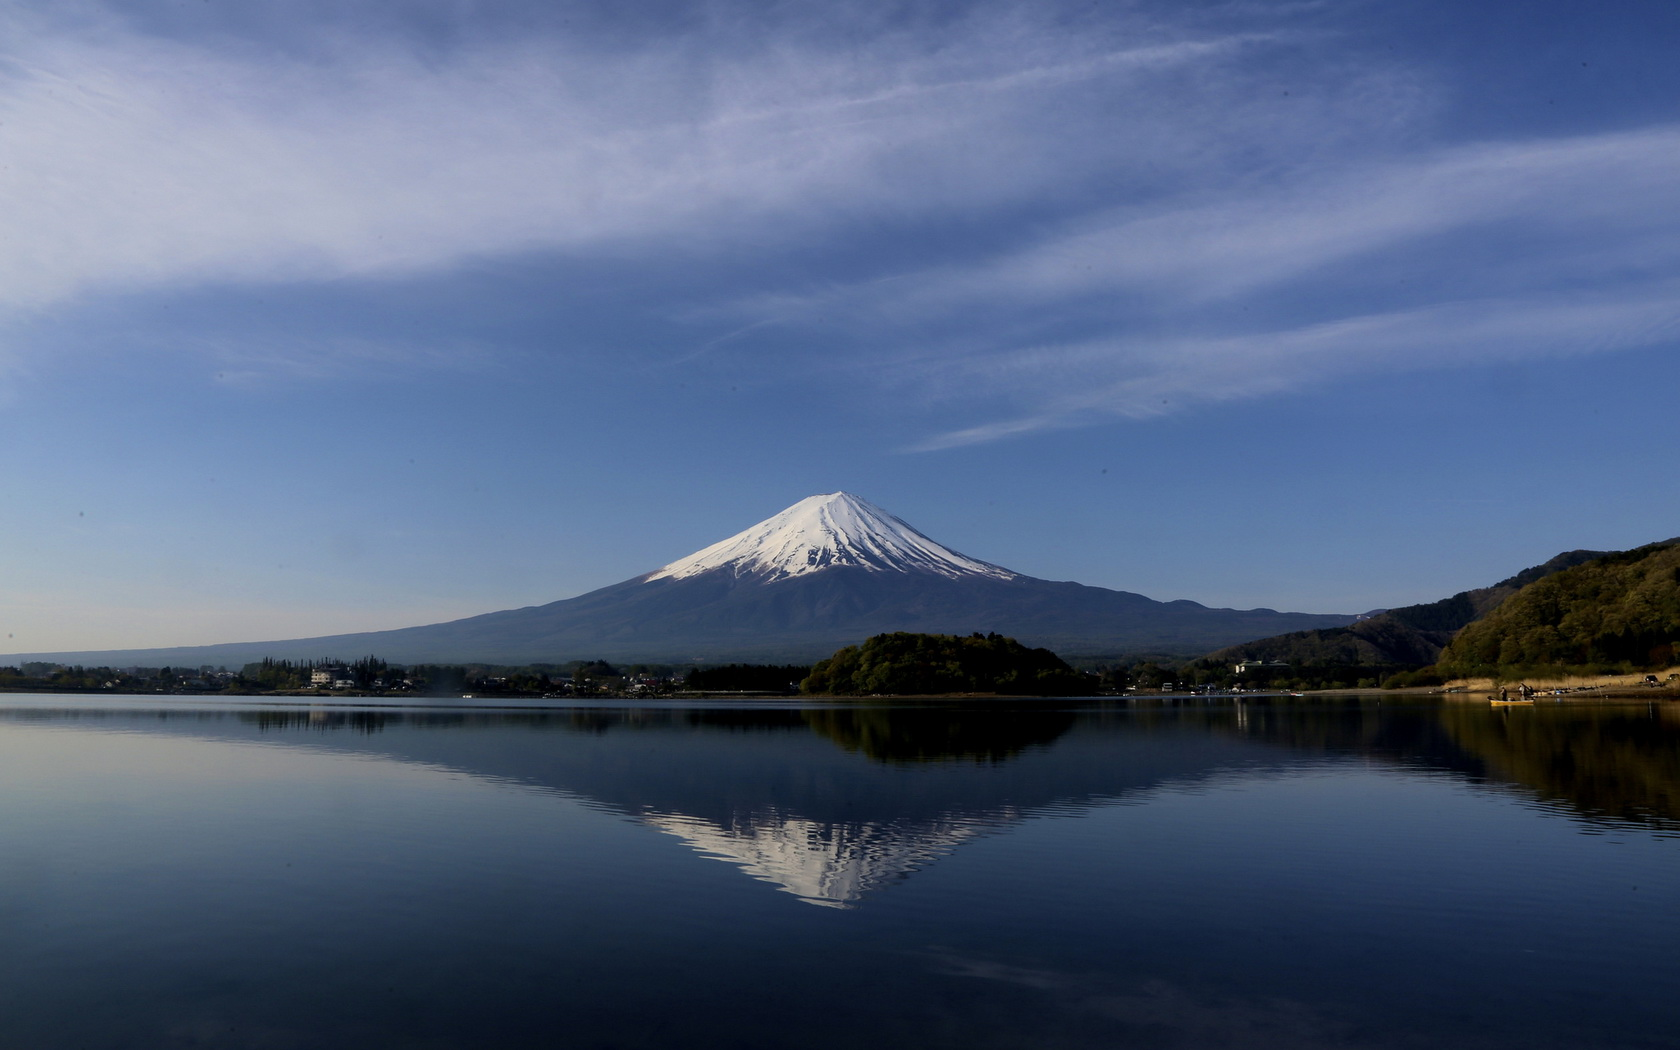 Mount Fuji wallpaper 1680x1050 122413 WallpaperUP 1680x1050